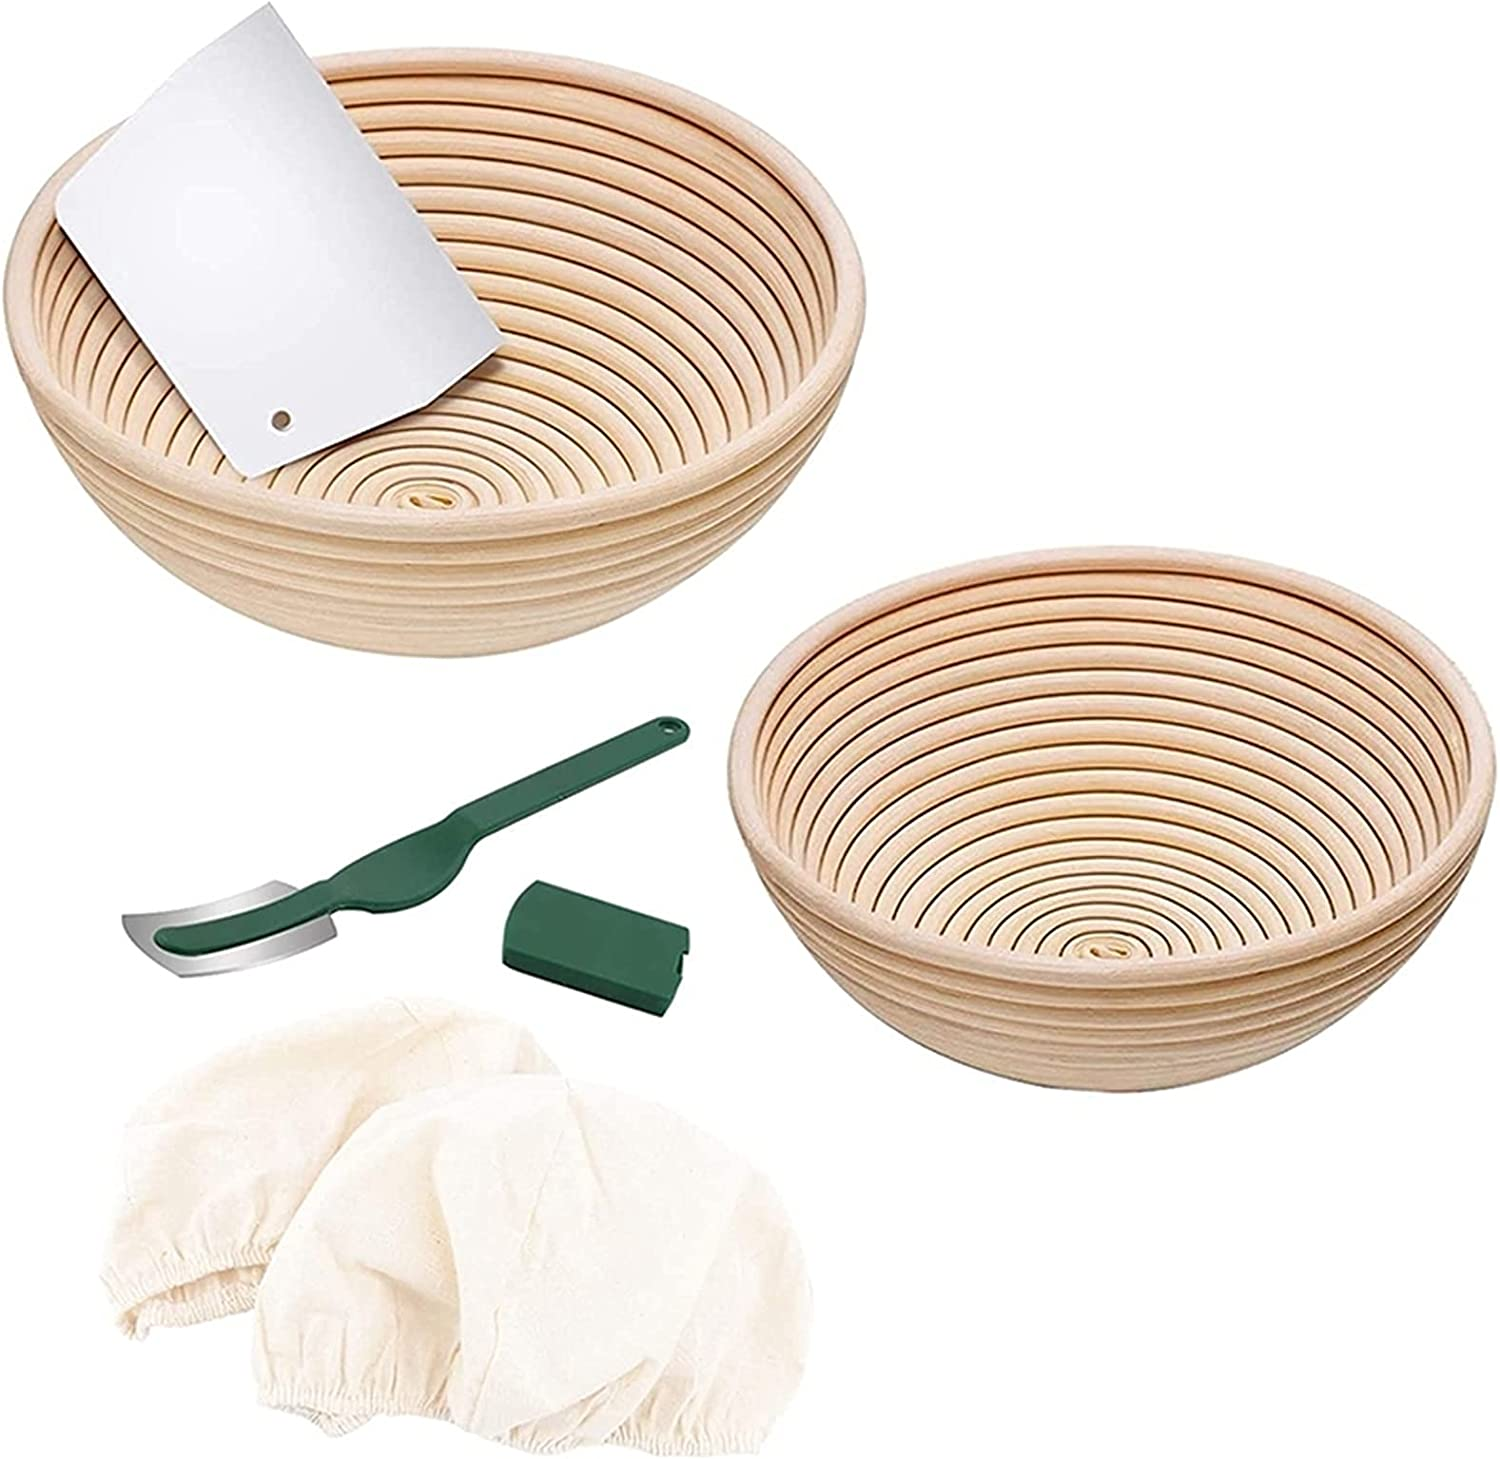 low-pricing Bread Basket Sturdy Natural Rattan B Round Jacksonville Mall Proofing 9 Inch